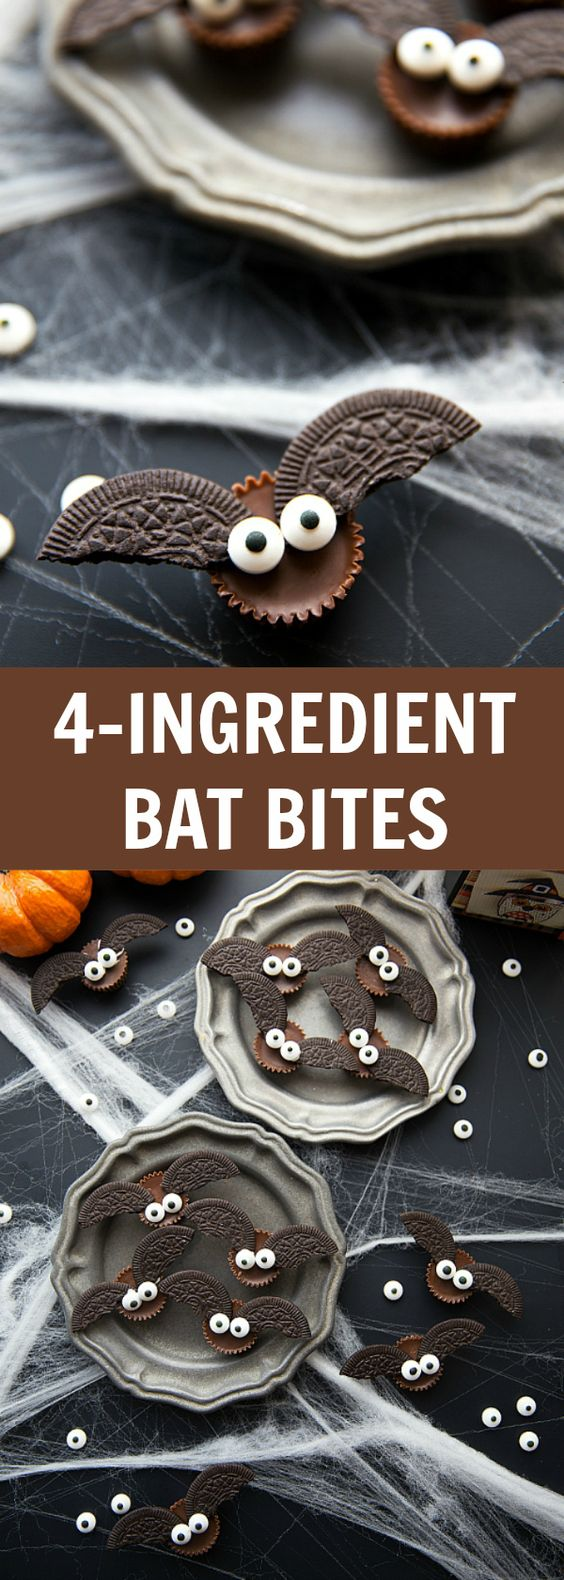 Bat Bites Halloween Food Tutorial - Spiros